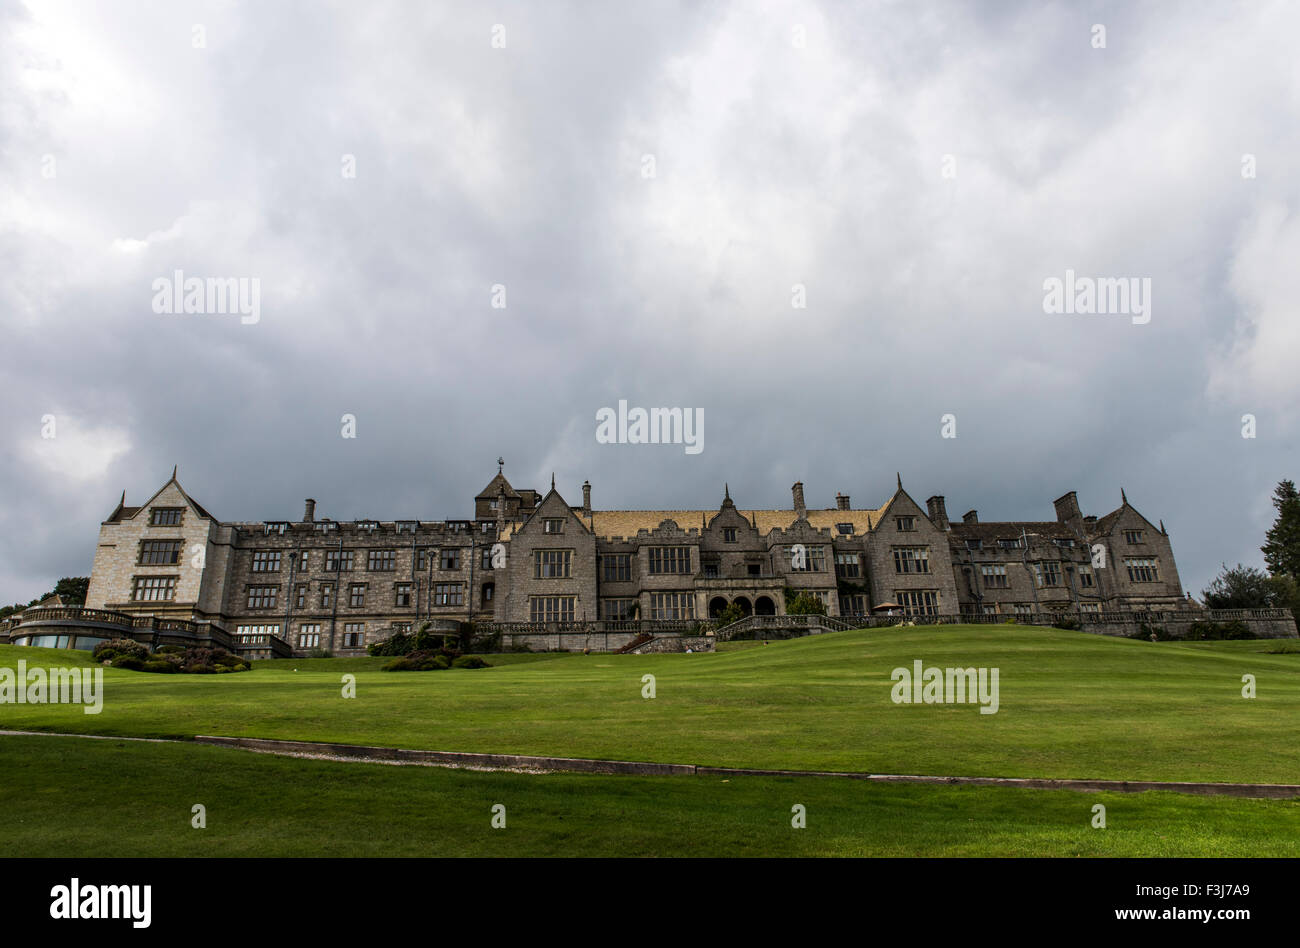 Front view of Bovey Castle Hotel Dartmoor, England, Great Britain, United Kingdom, Europe - Stock Image